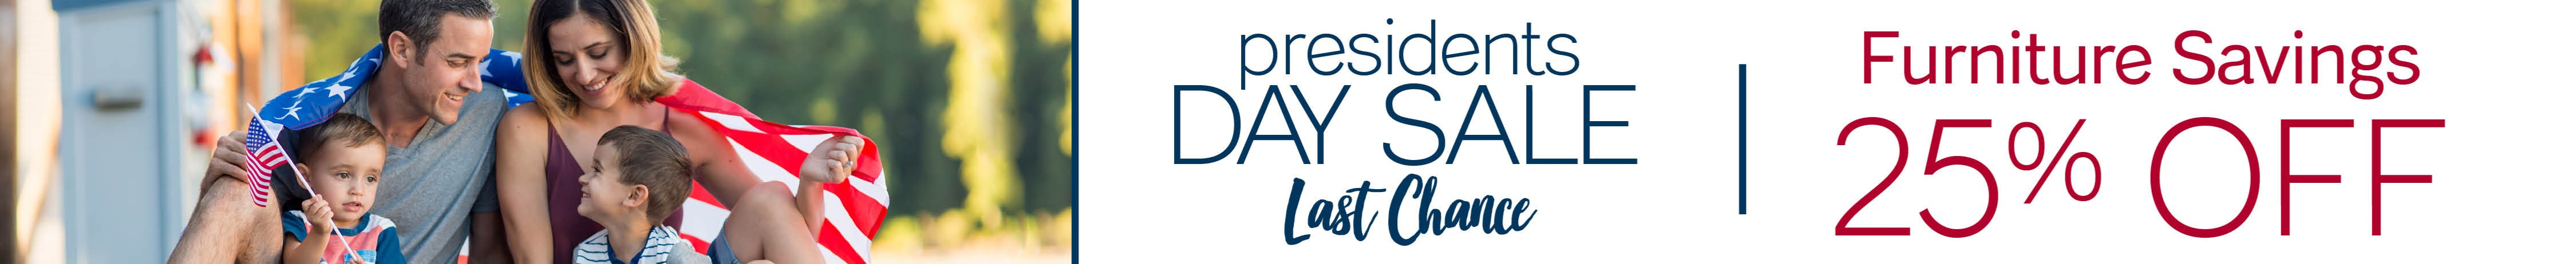 Furniture & ApplianceMart Presidents Day Last Chance